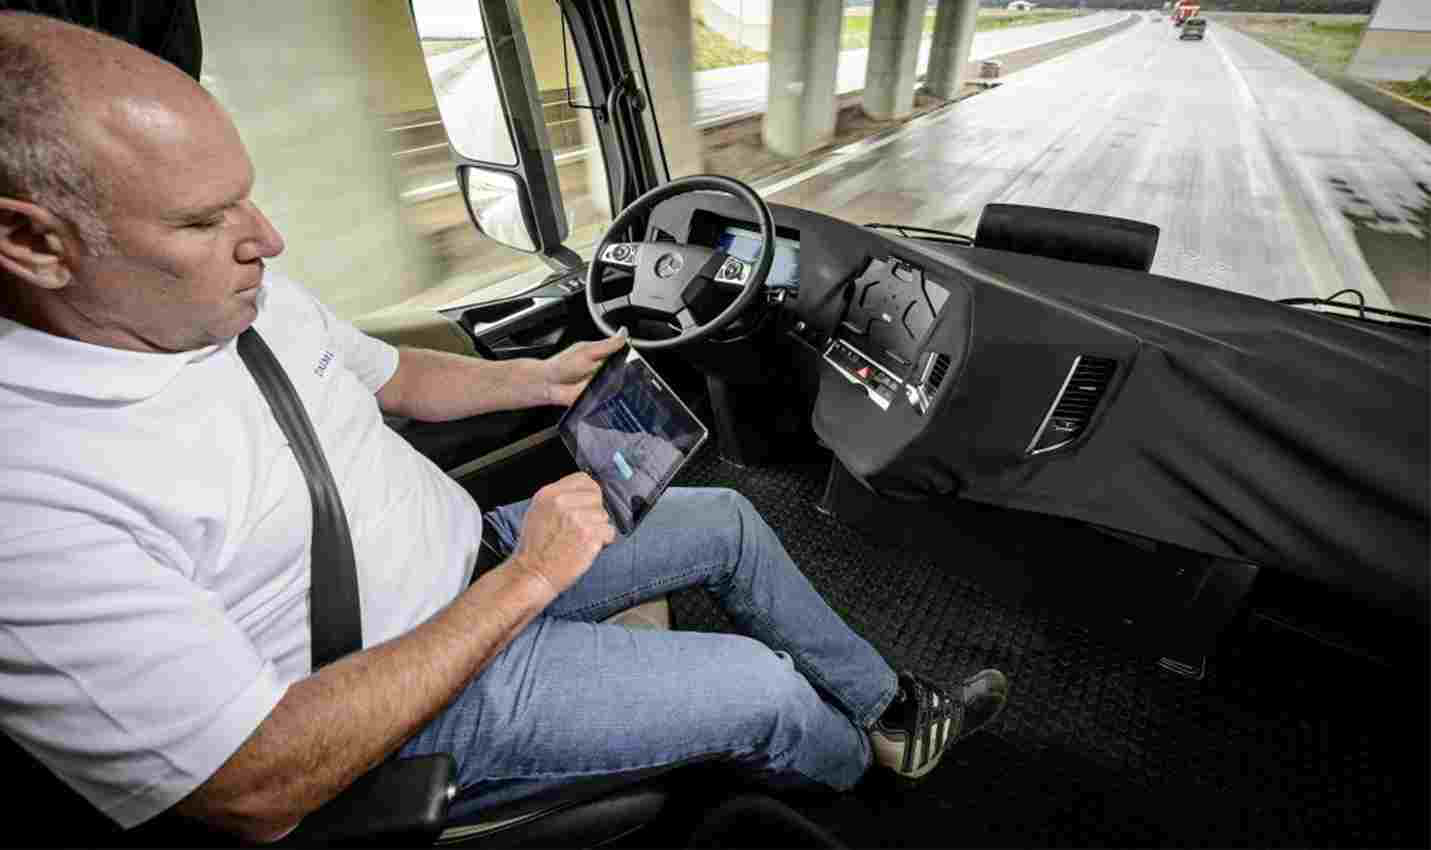 Trucking's Future Now - Driver in Autonomous Truck